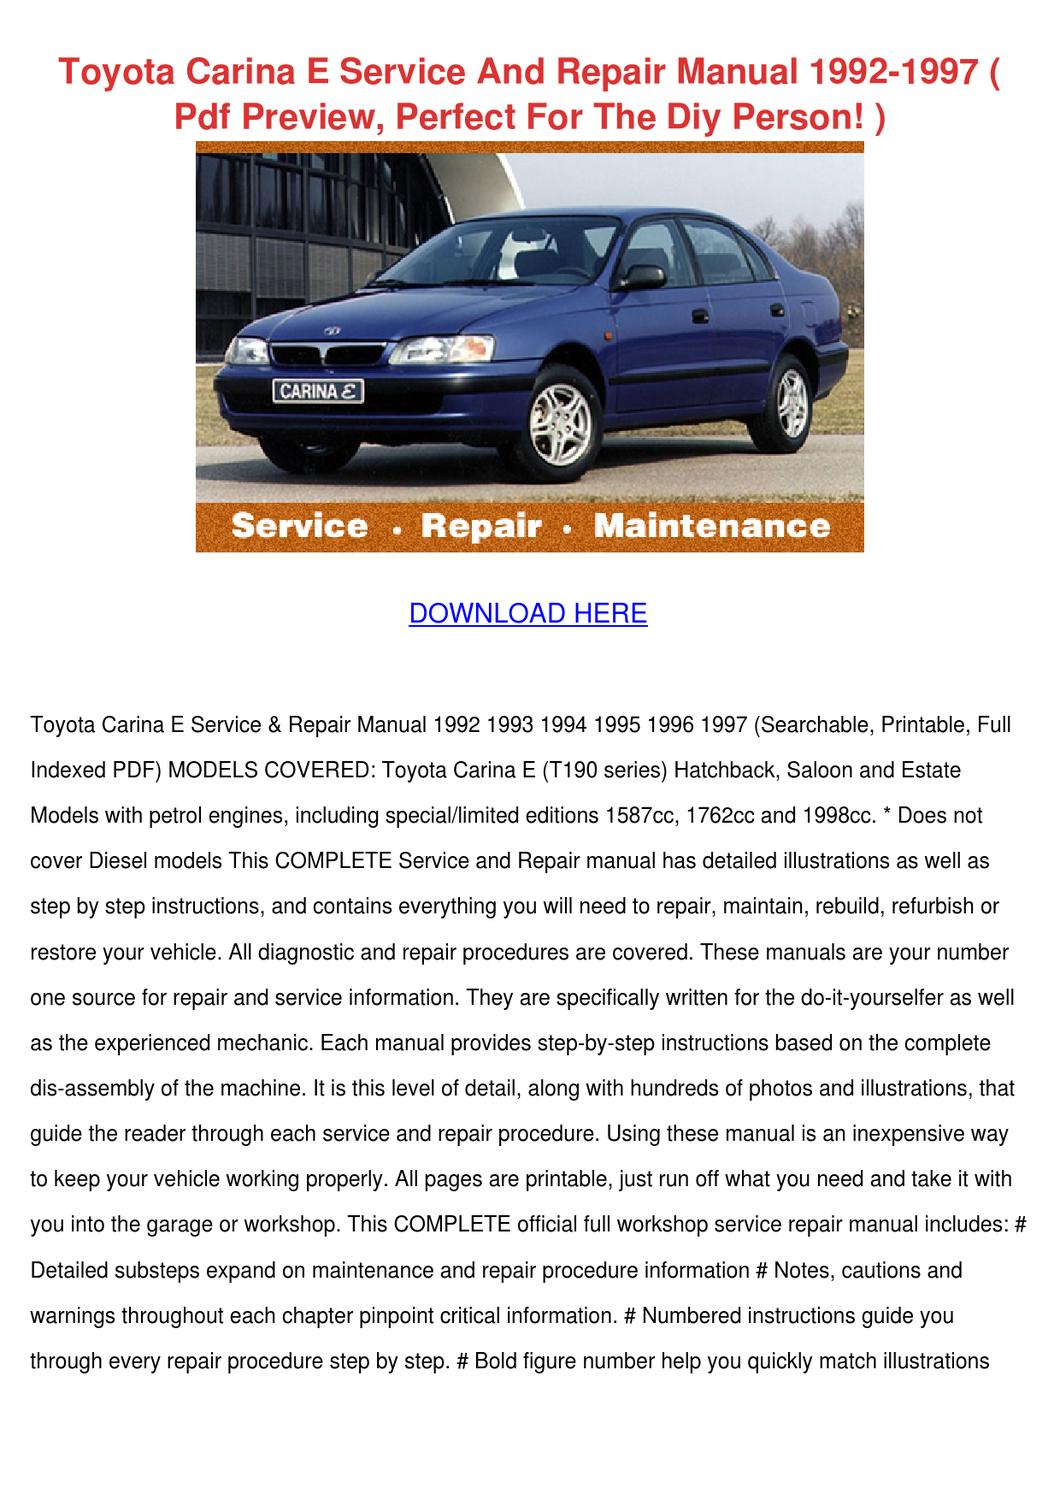 toyota carina e service and repair manual 199 by leoralaird issuu